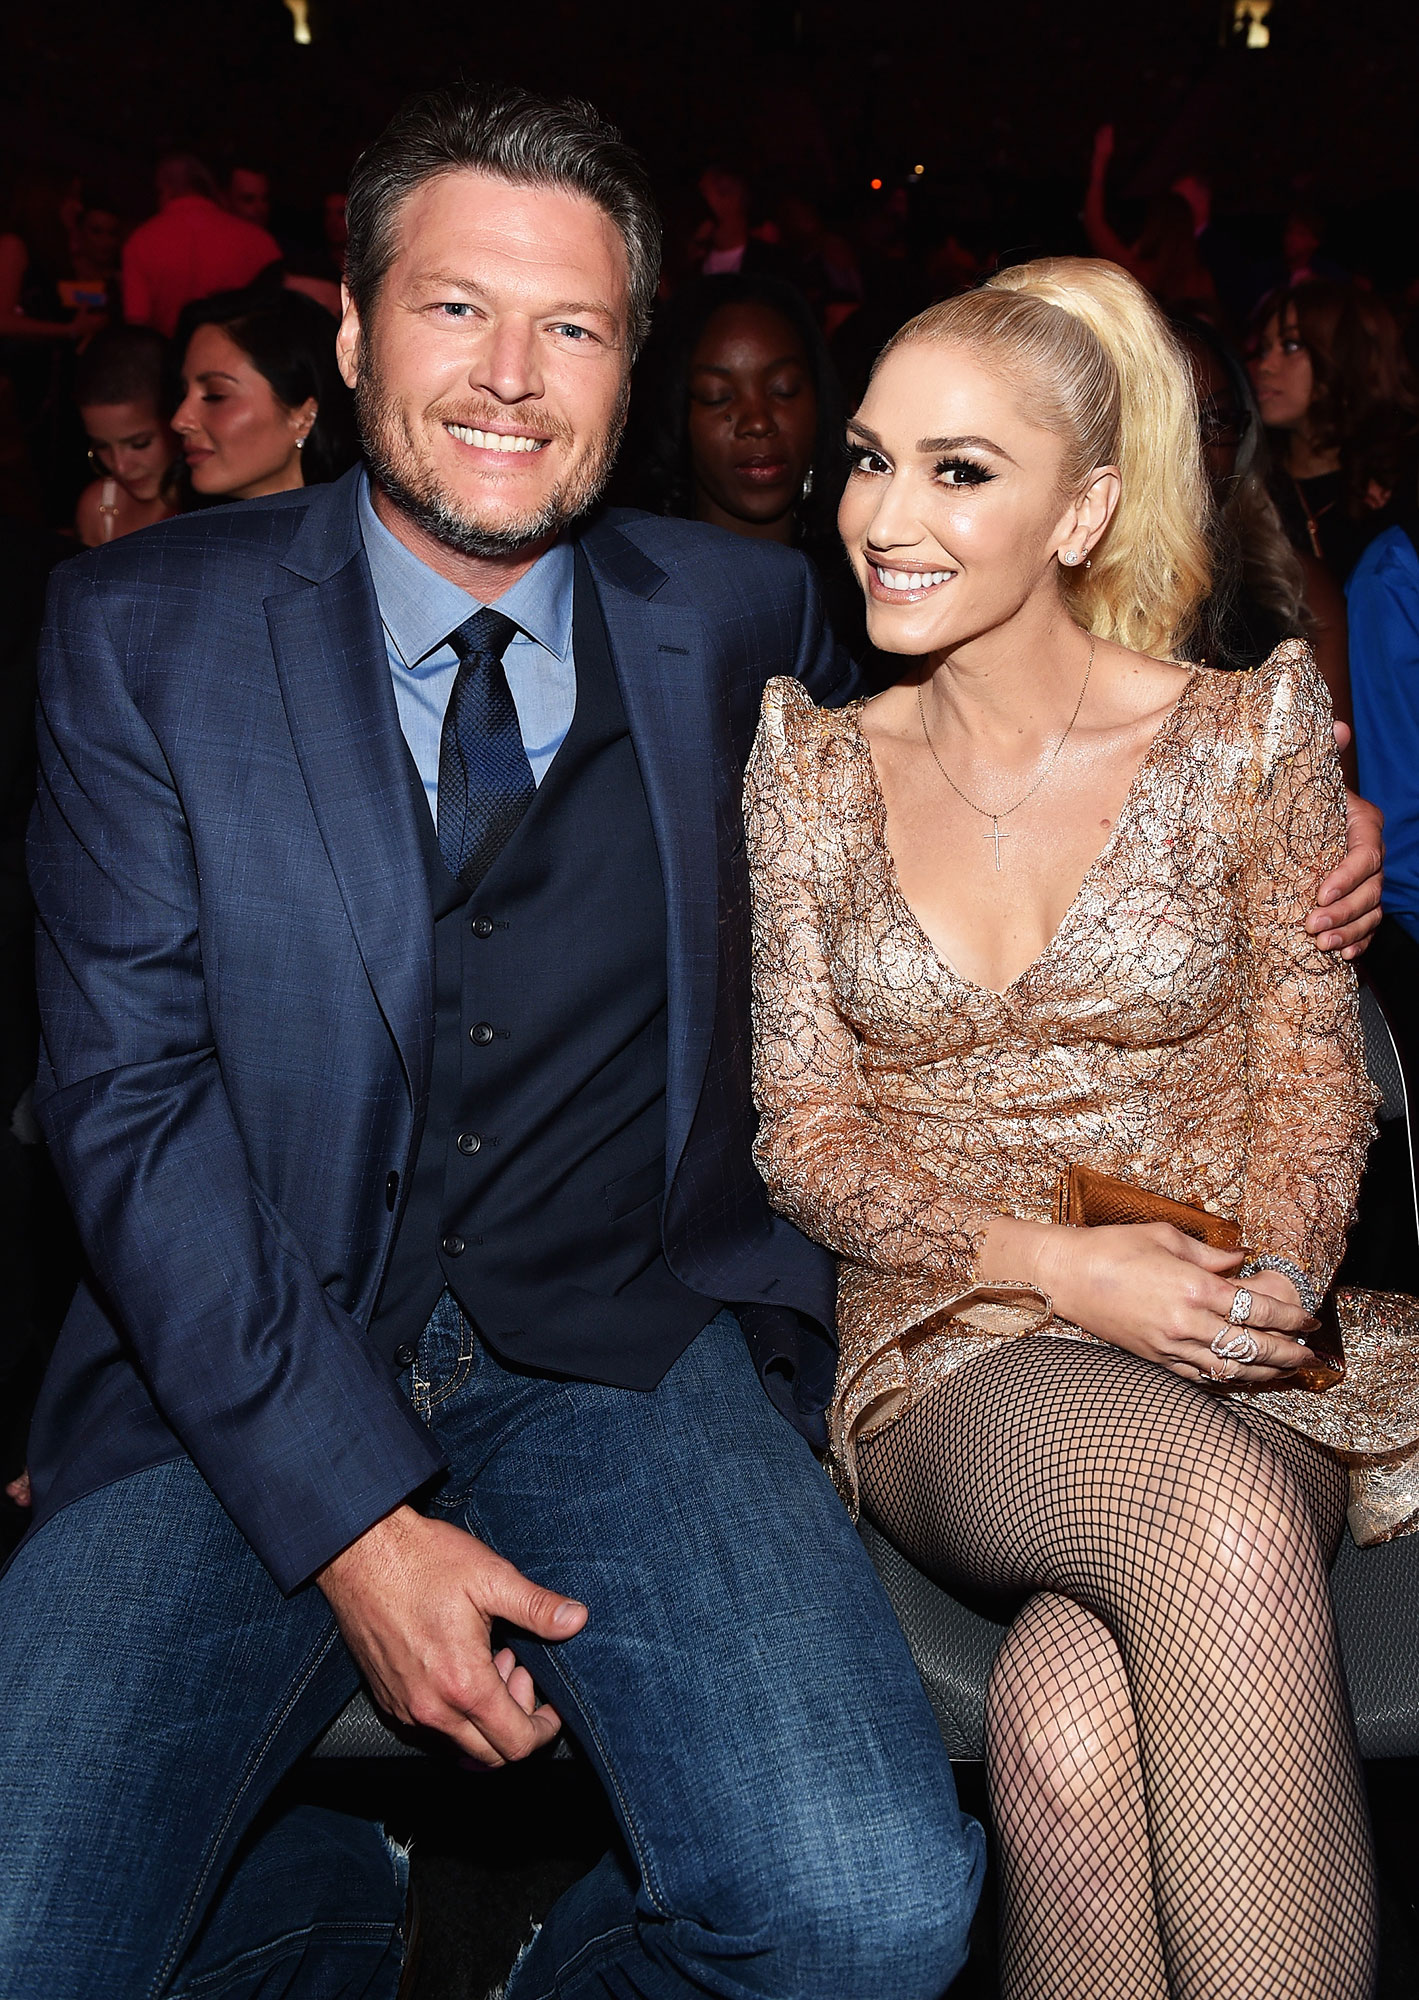 "Gwen-Stefani-blake-shelton-sweetest - Stefani serenaded Shelton with a sweet birthday song on June 16. ""Happy Birthday, dear Blakey,"" she could be heard crooning in a video she posted on Instagram."